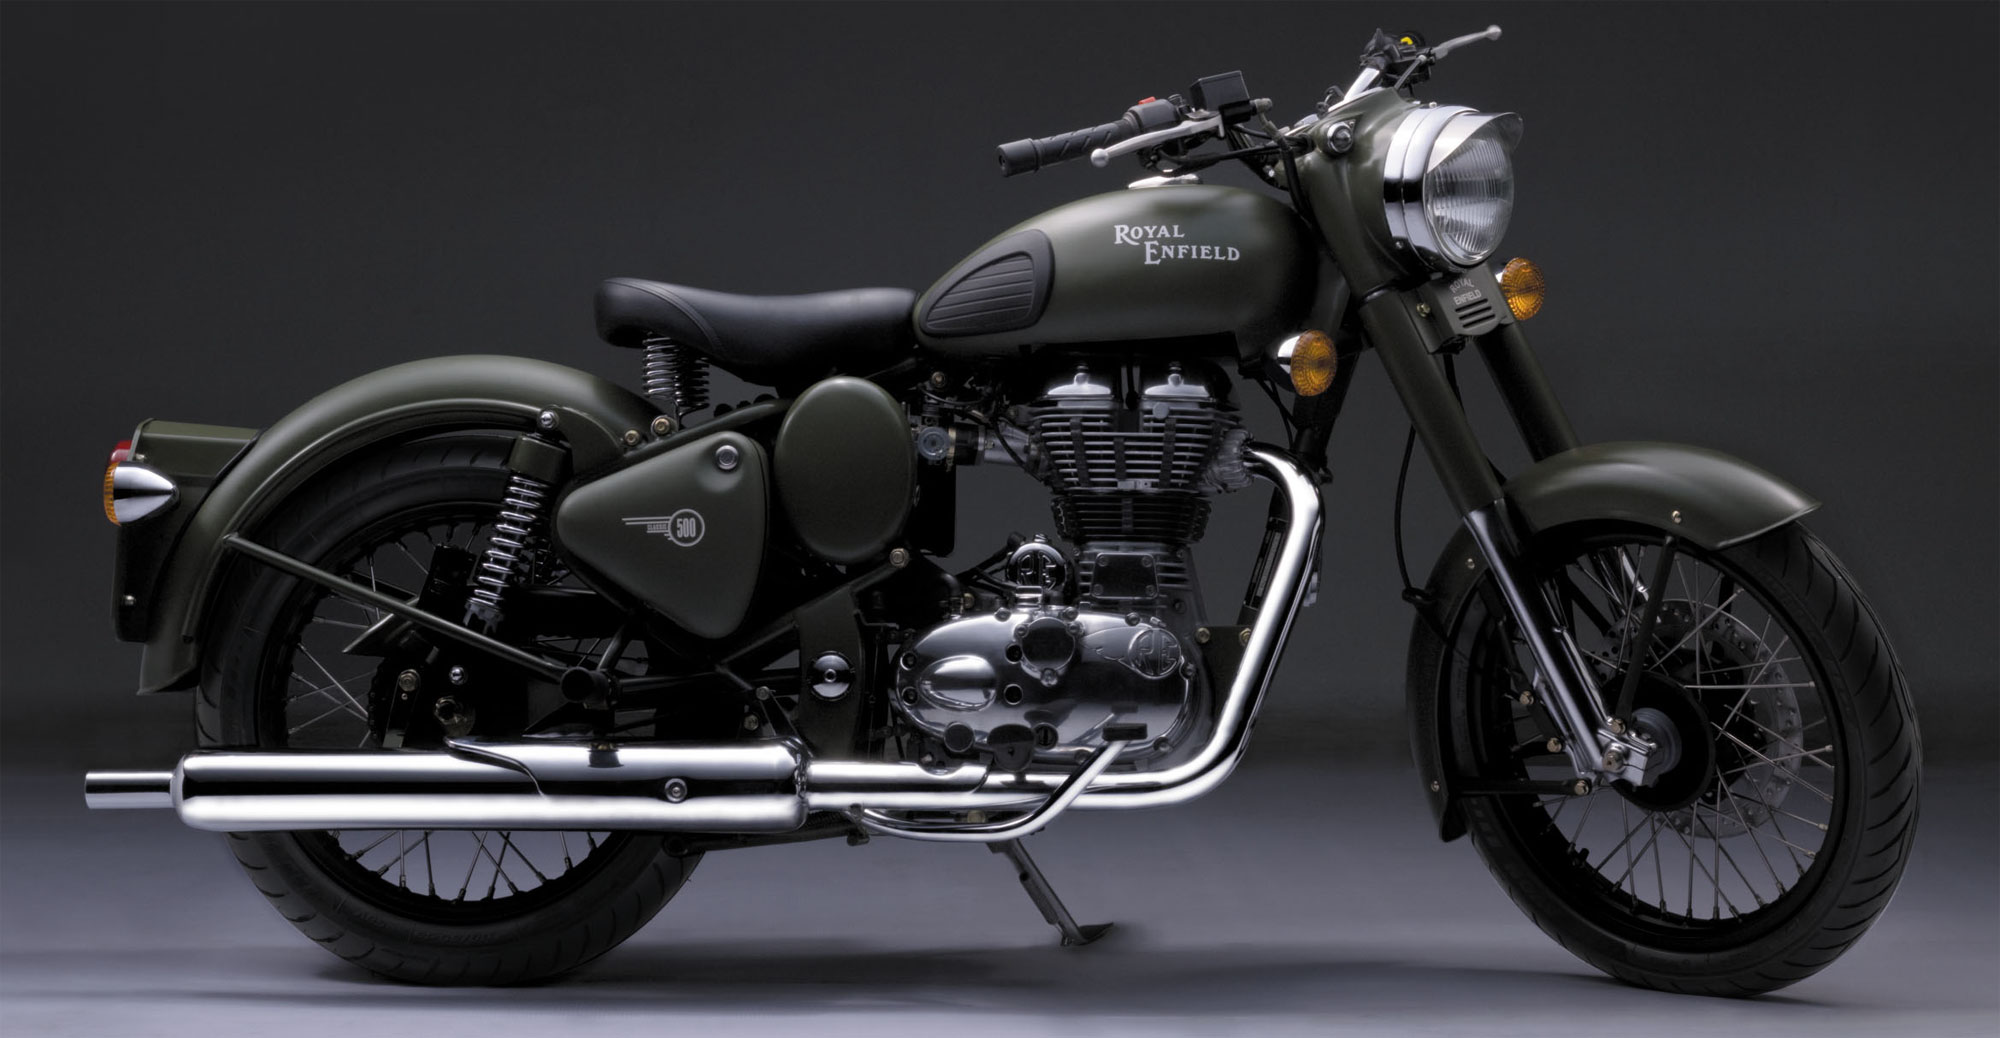 2013 Royal Enfield Bullet C5 Military Pictures Photos Wallpapers